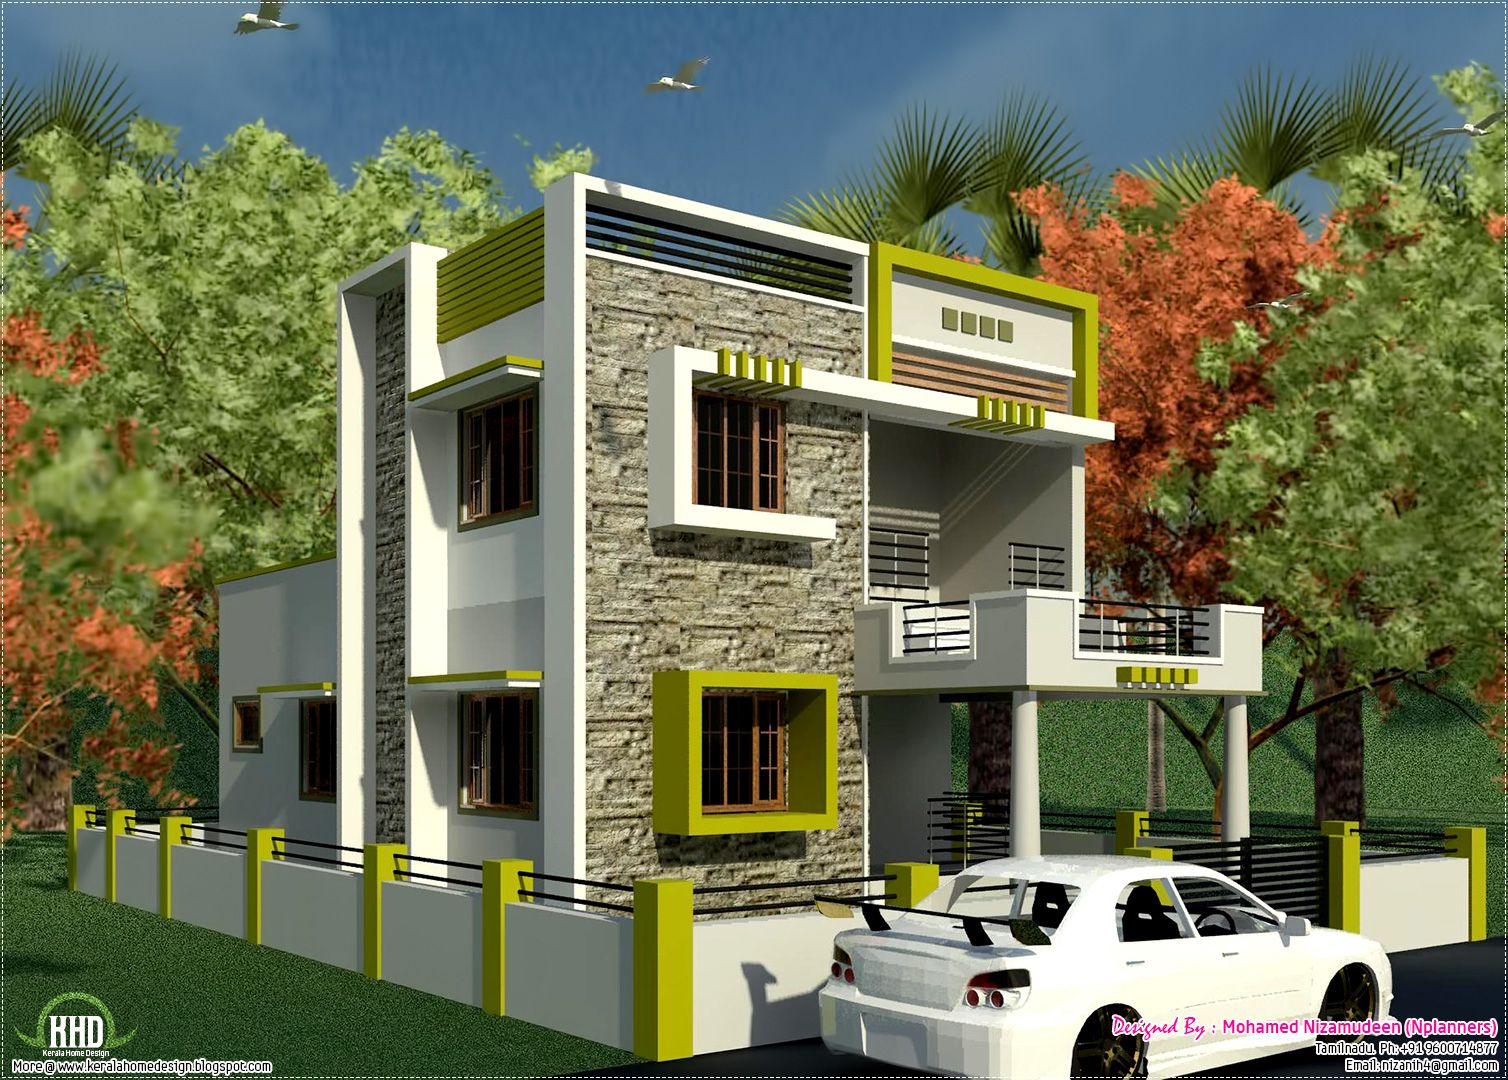 Small house with car park design tobfav com ideas for for Exterior house designs indian style